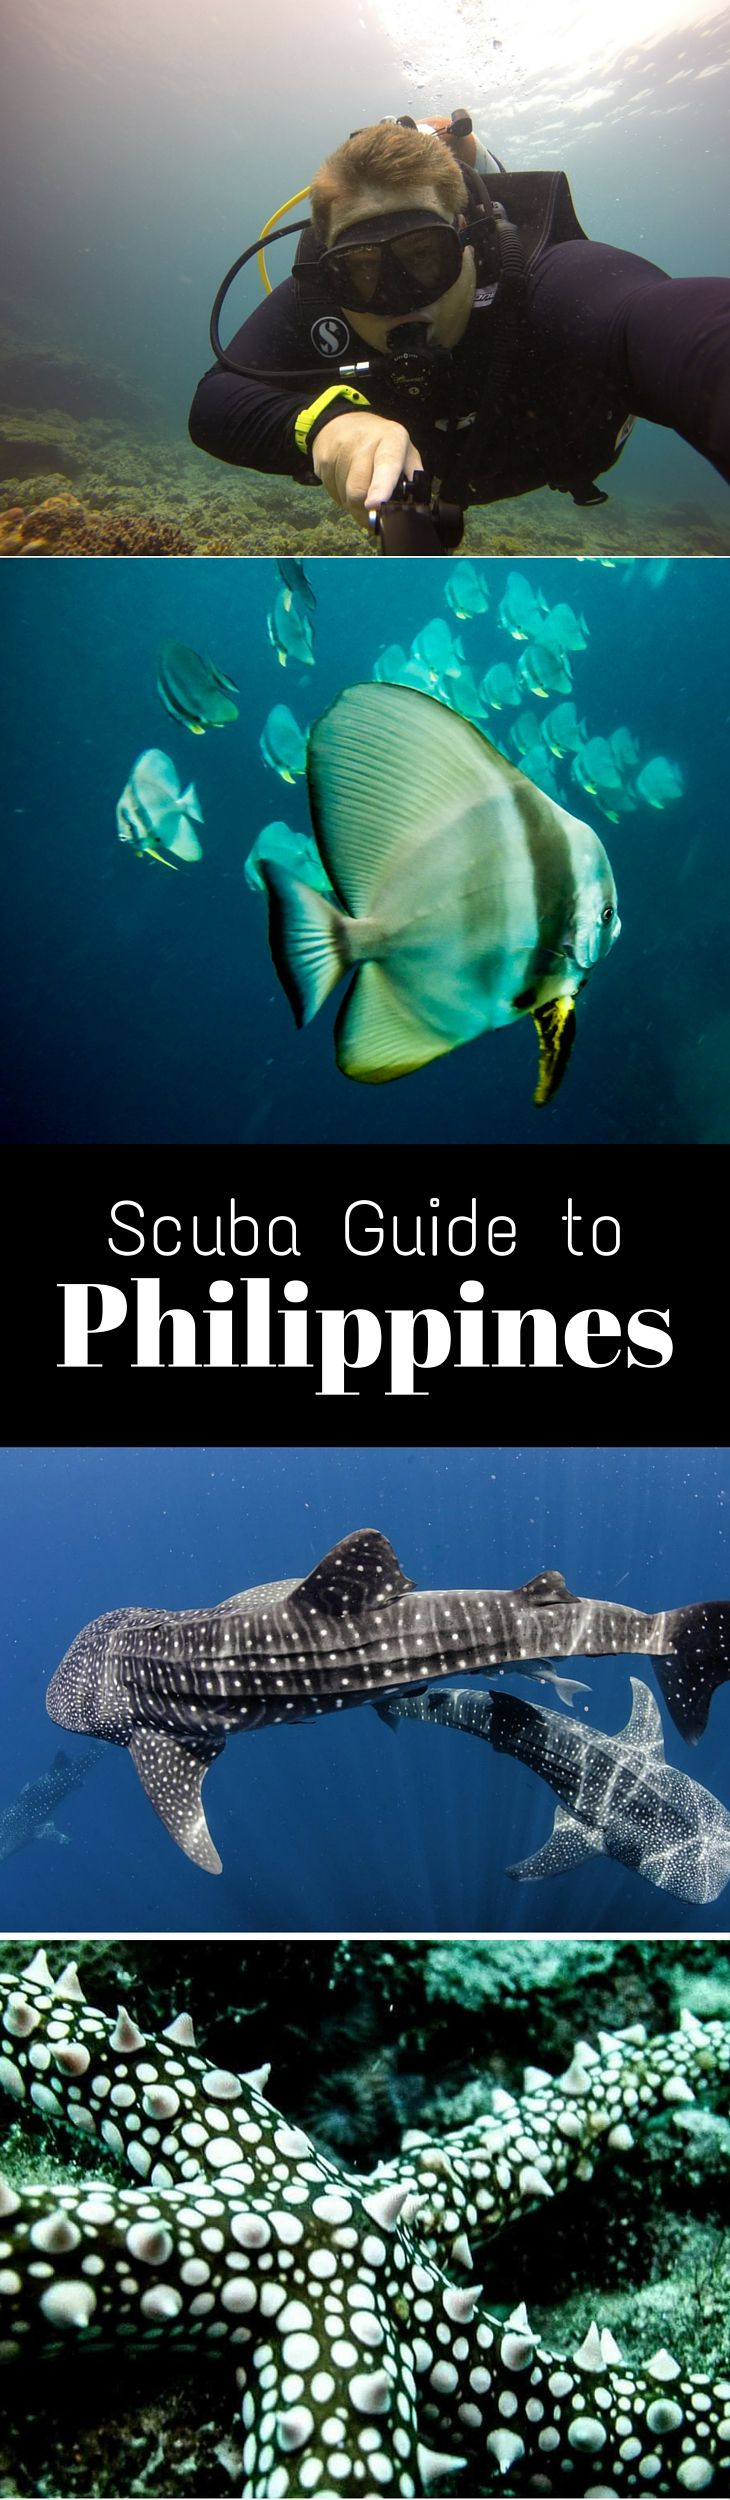 The Ultimate Guide to Scuba Diving Philippines | Art of Scuba Diving